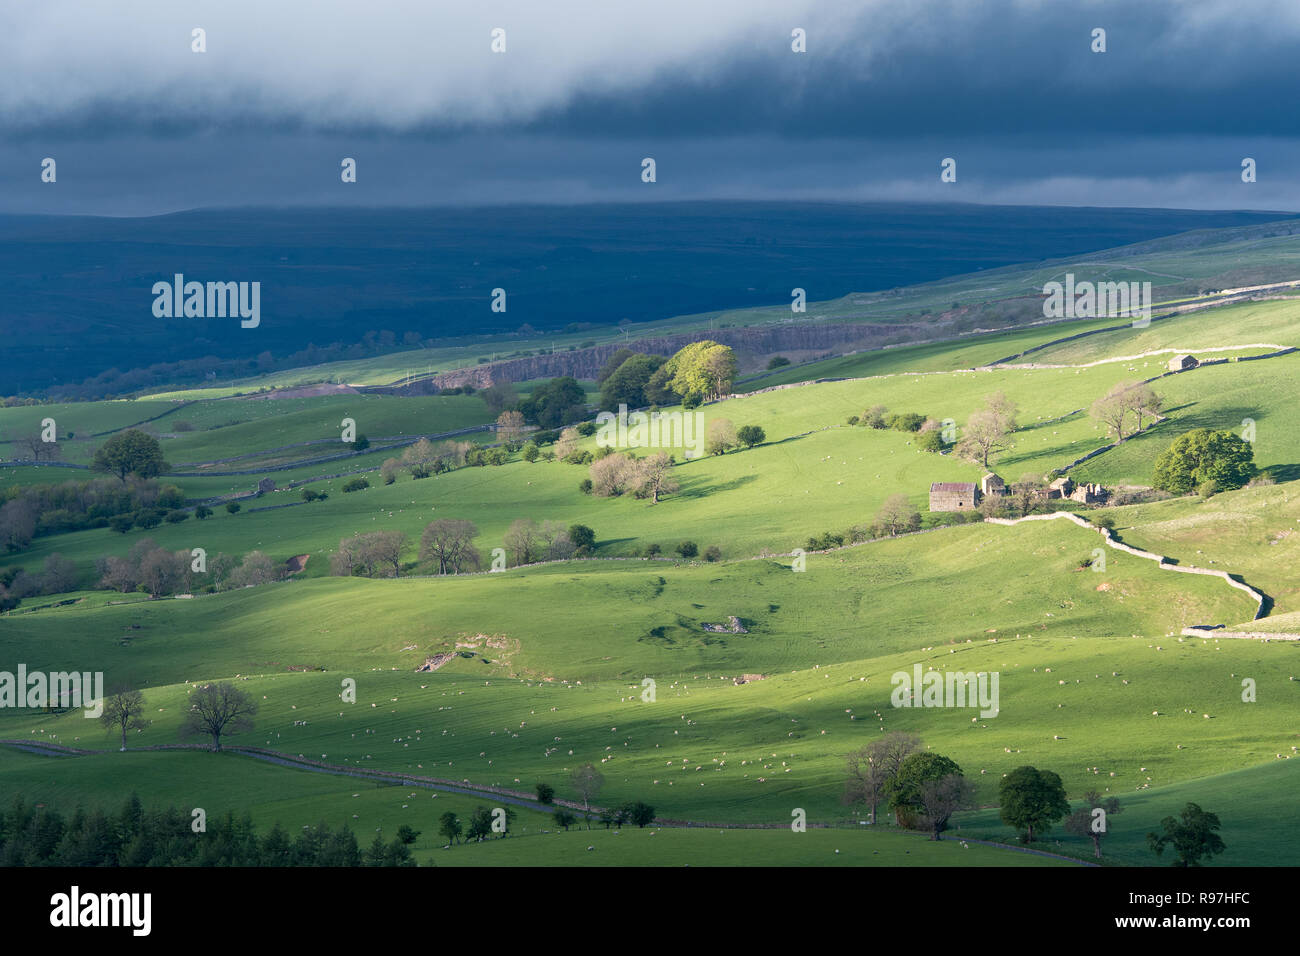 Countryside near Kirkby Stephen in the Upper Eden Valley, Cumbria, UK. Stock Photo